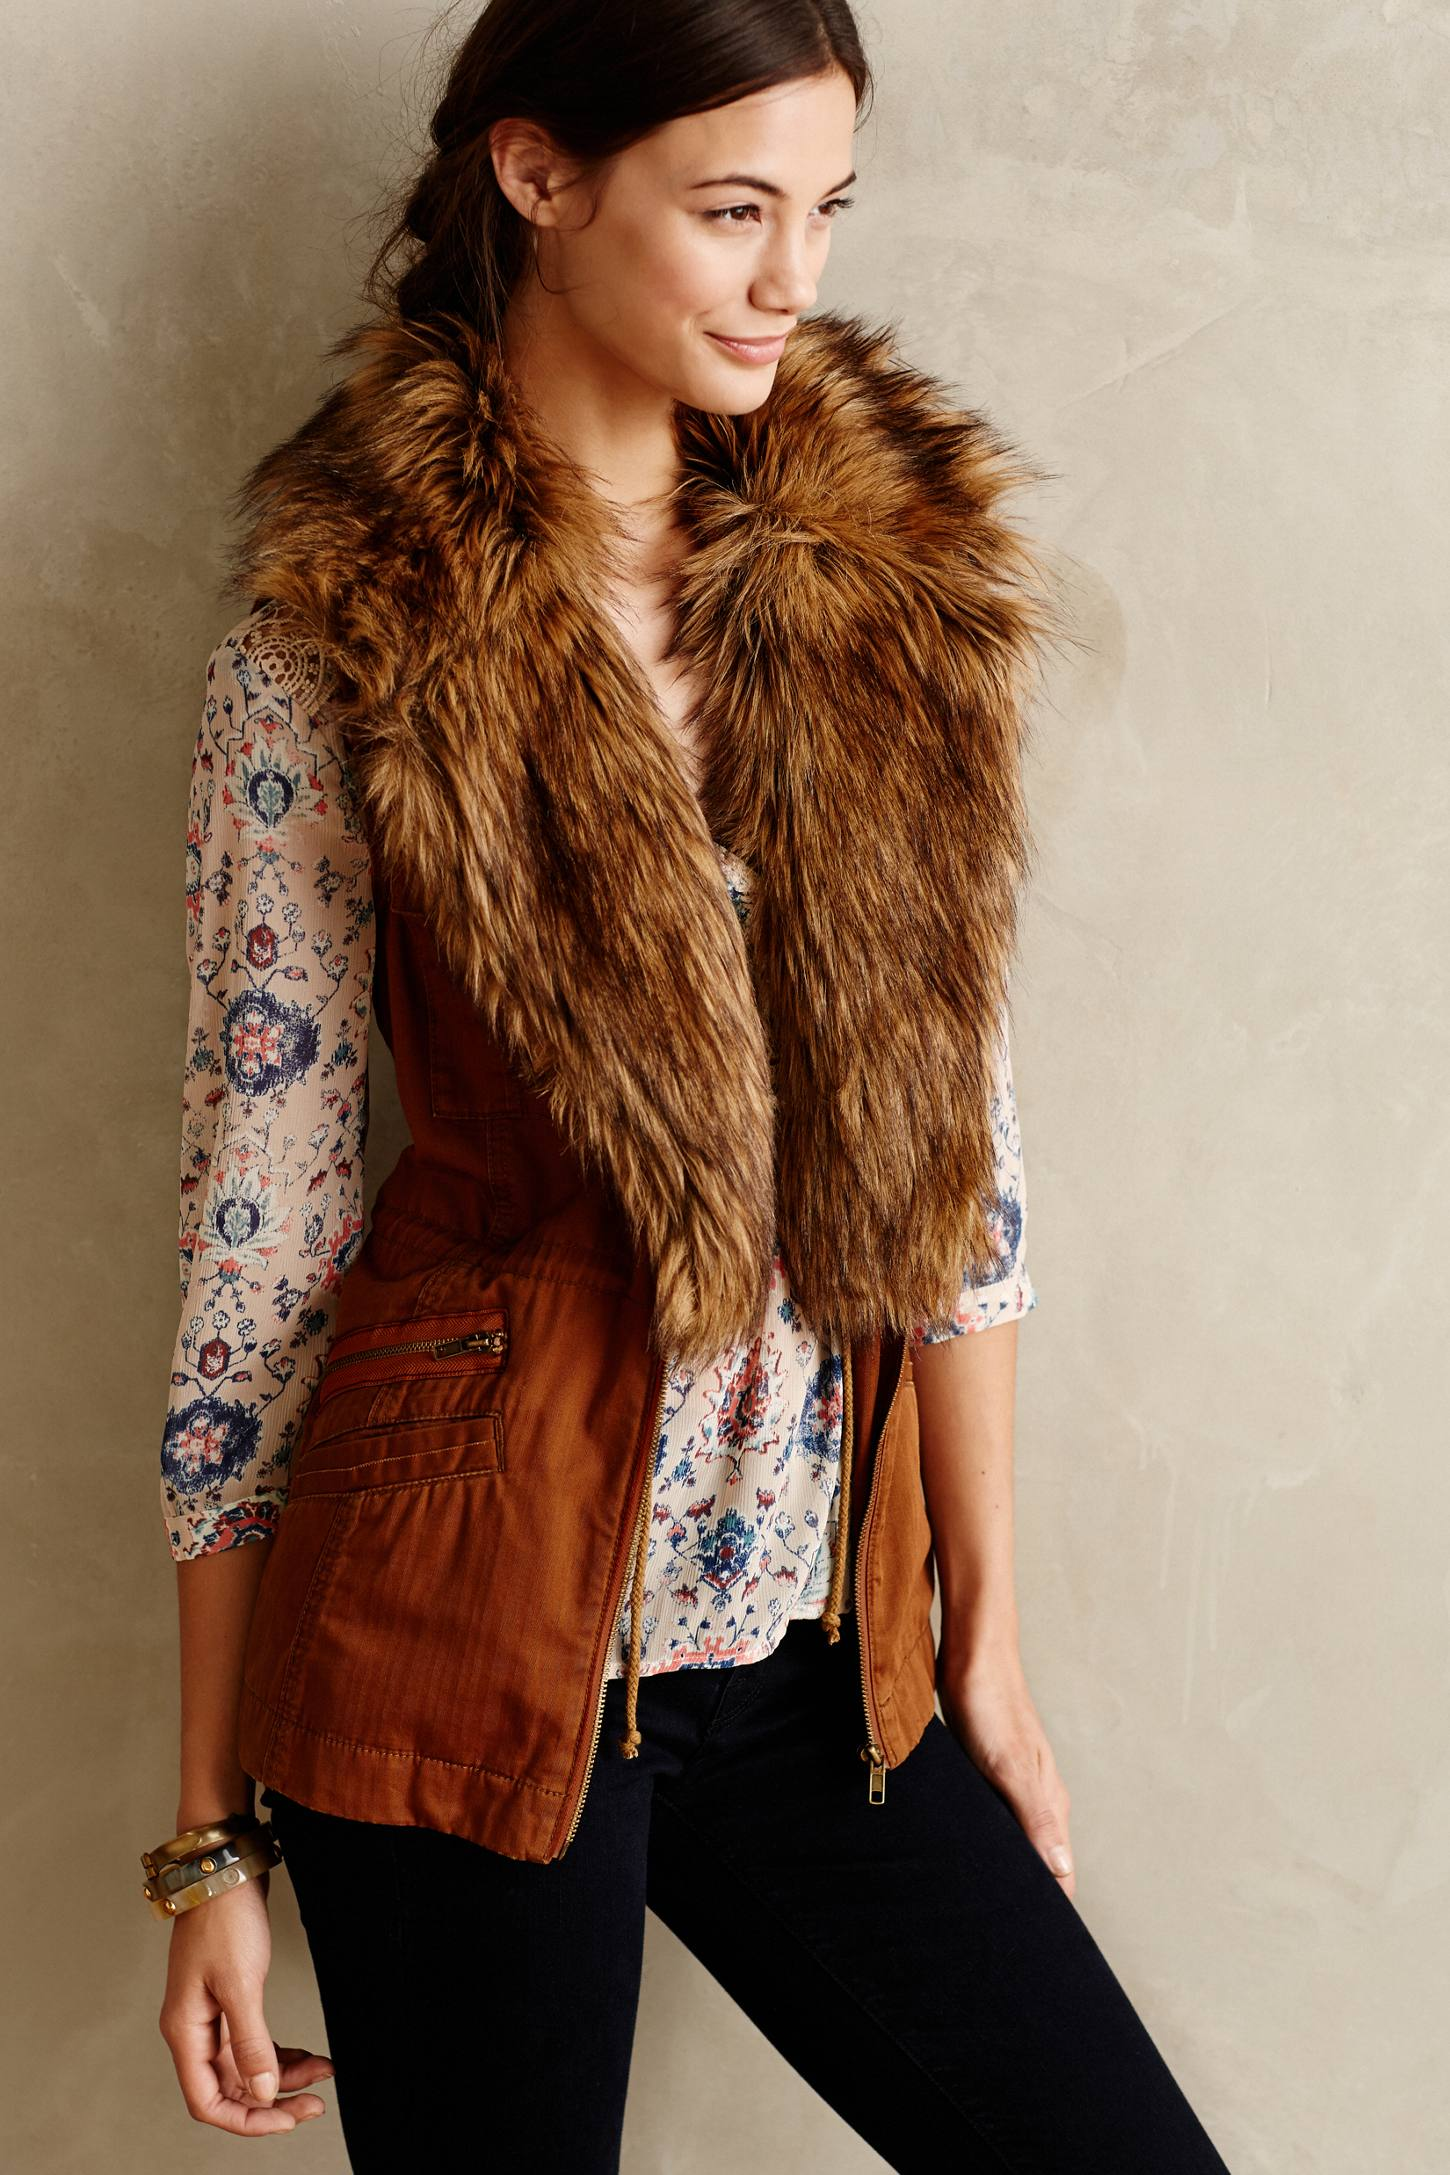 Anthropologie Faux-Fur Shawl Vest | How to Wear Dresses in Fall